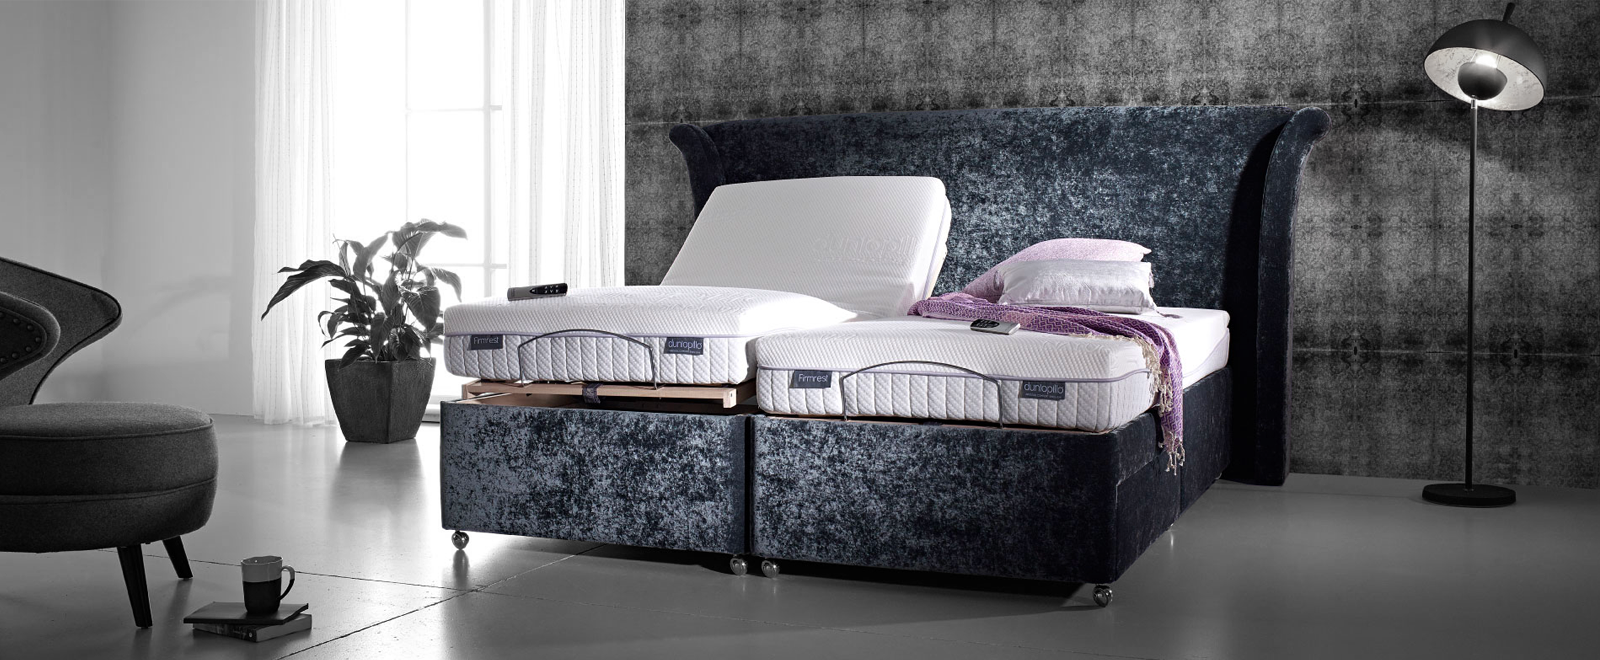 Adjustabable Beds